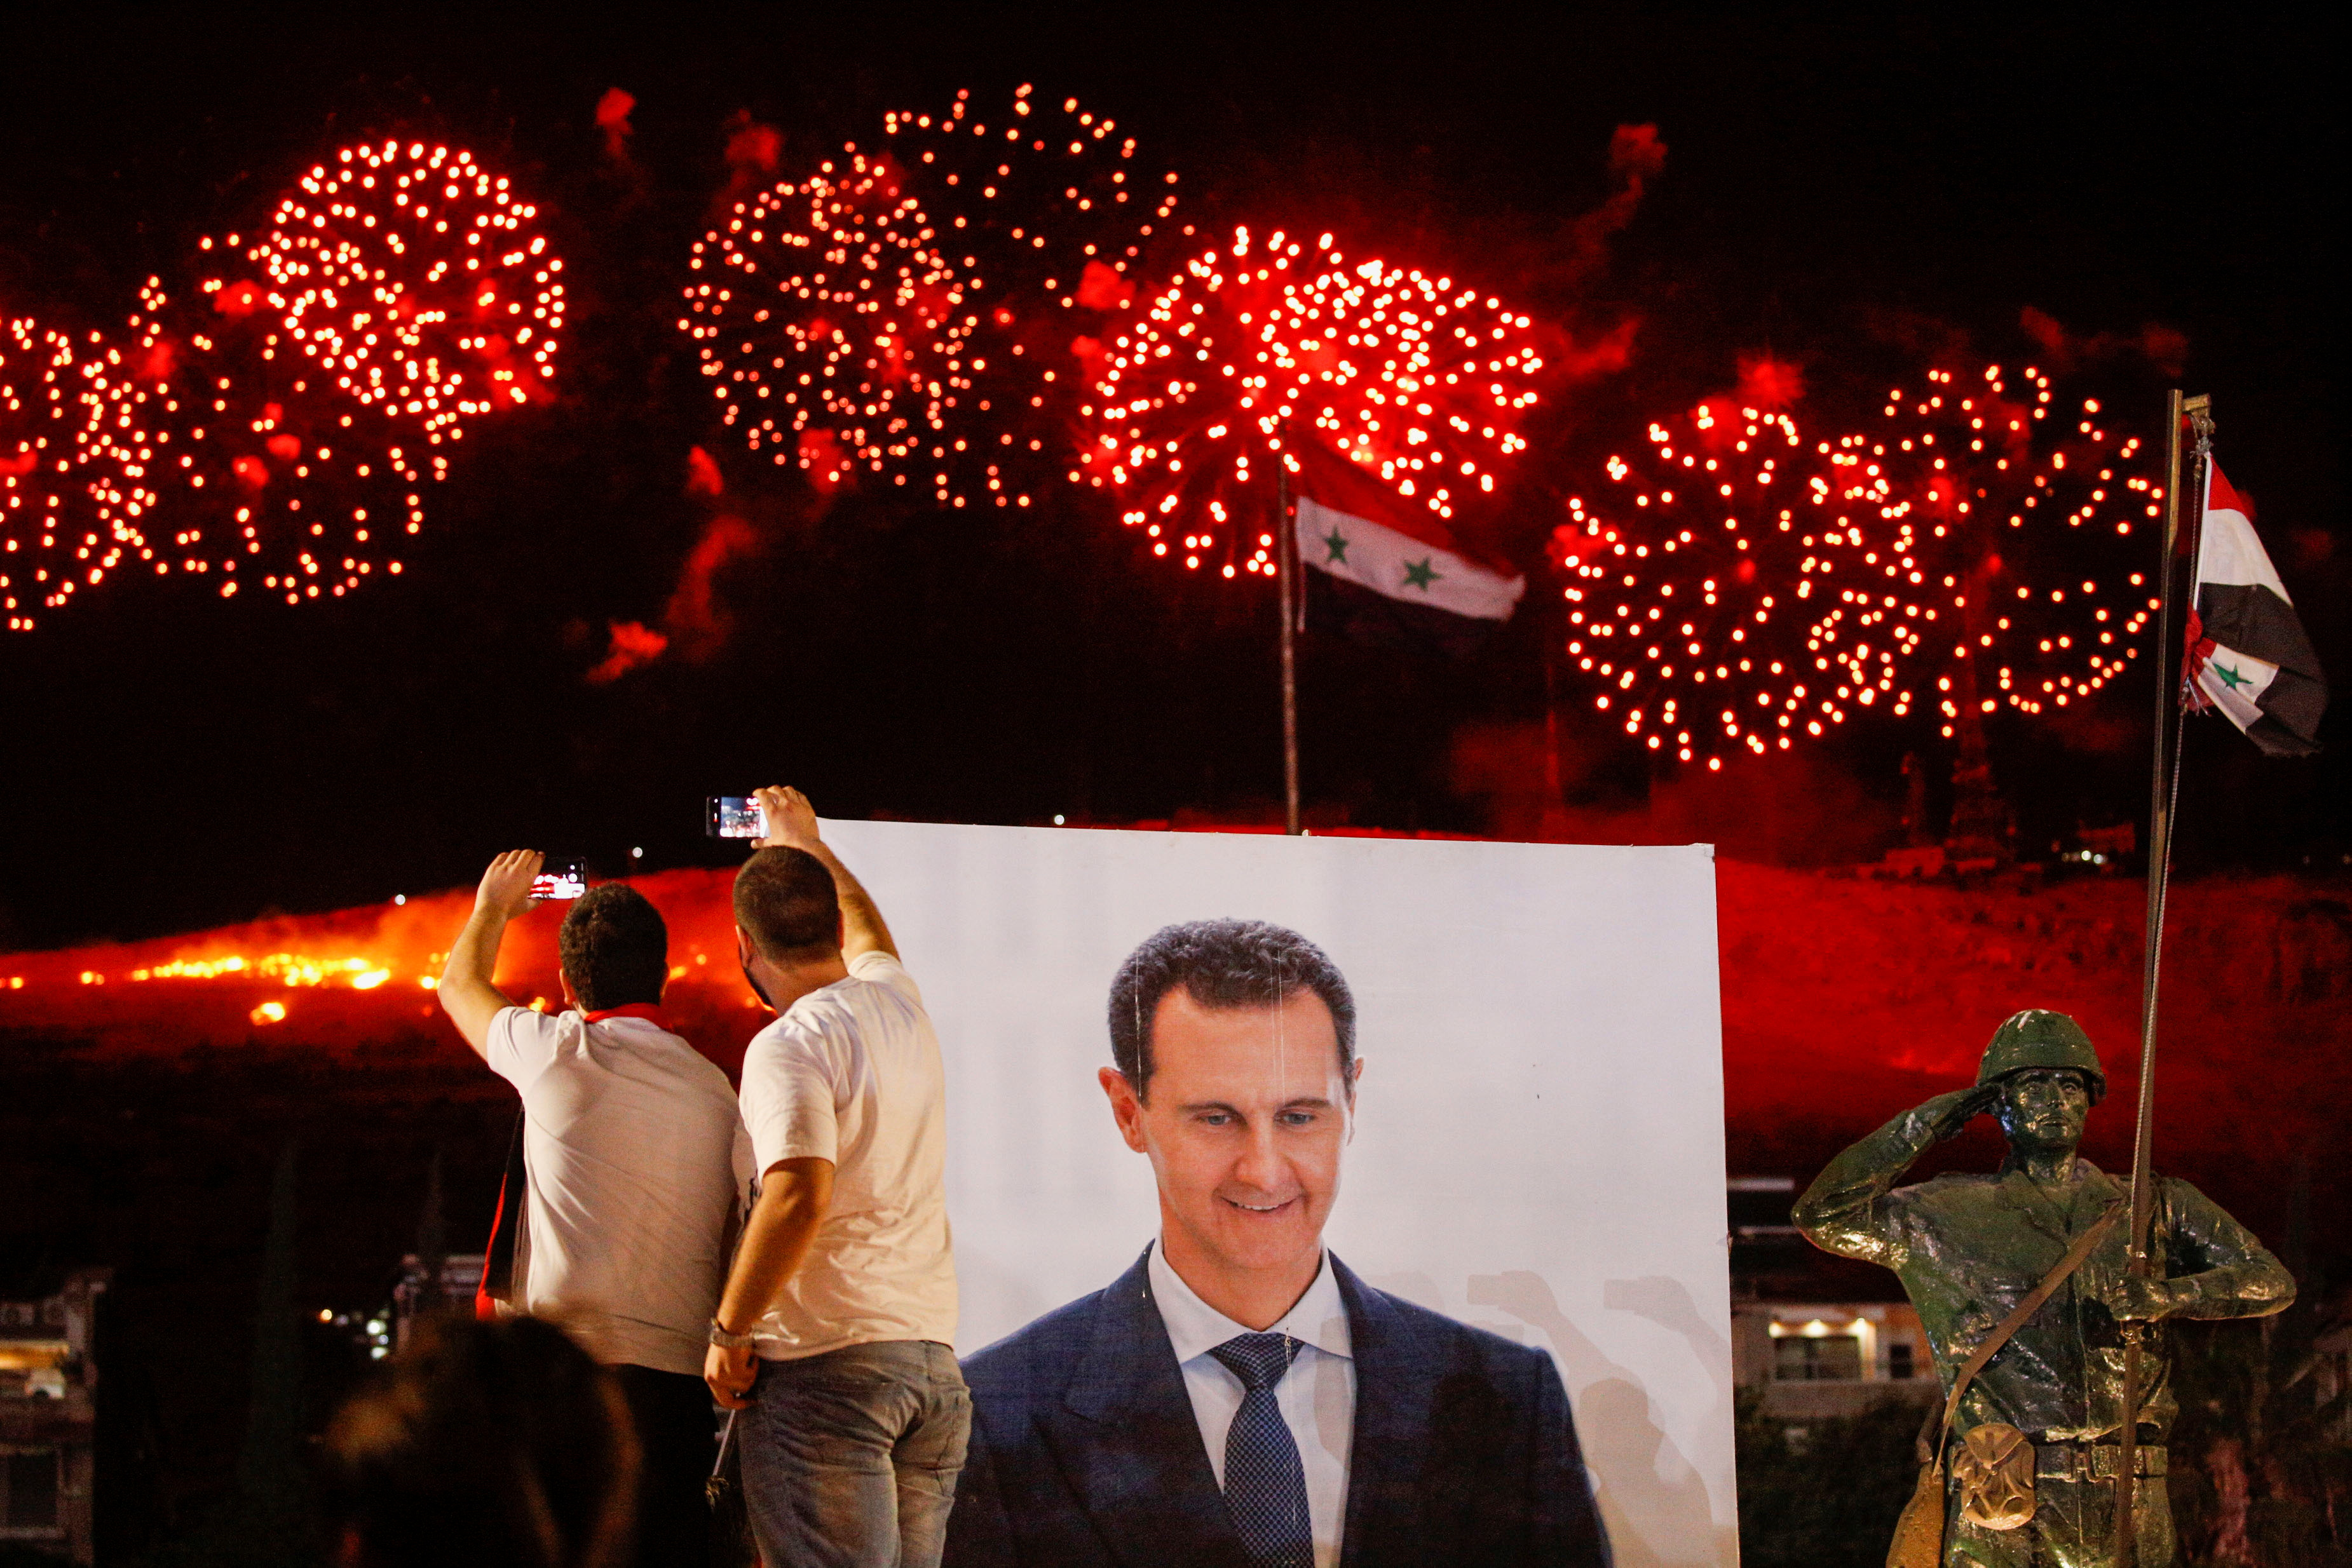 A poster depicting Syria's president Bashar al- Assad is seen as supporters of him celebrate after the results of the presidential election announced that he won a fourth term in office, in Damascus, Syria, May 27, 2021. REUTERS/Omar Sanadiki